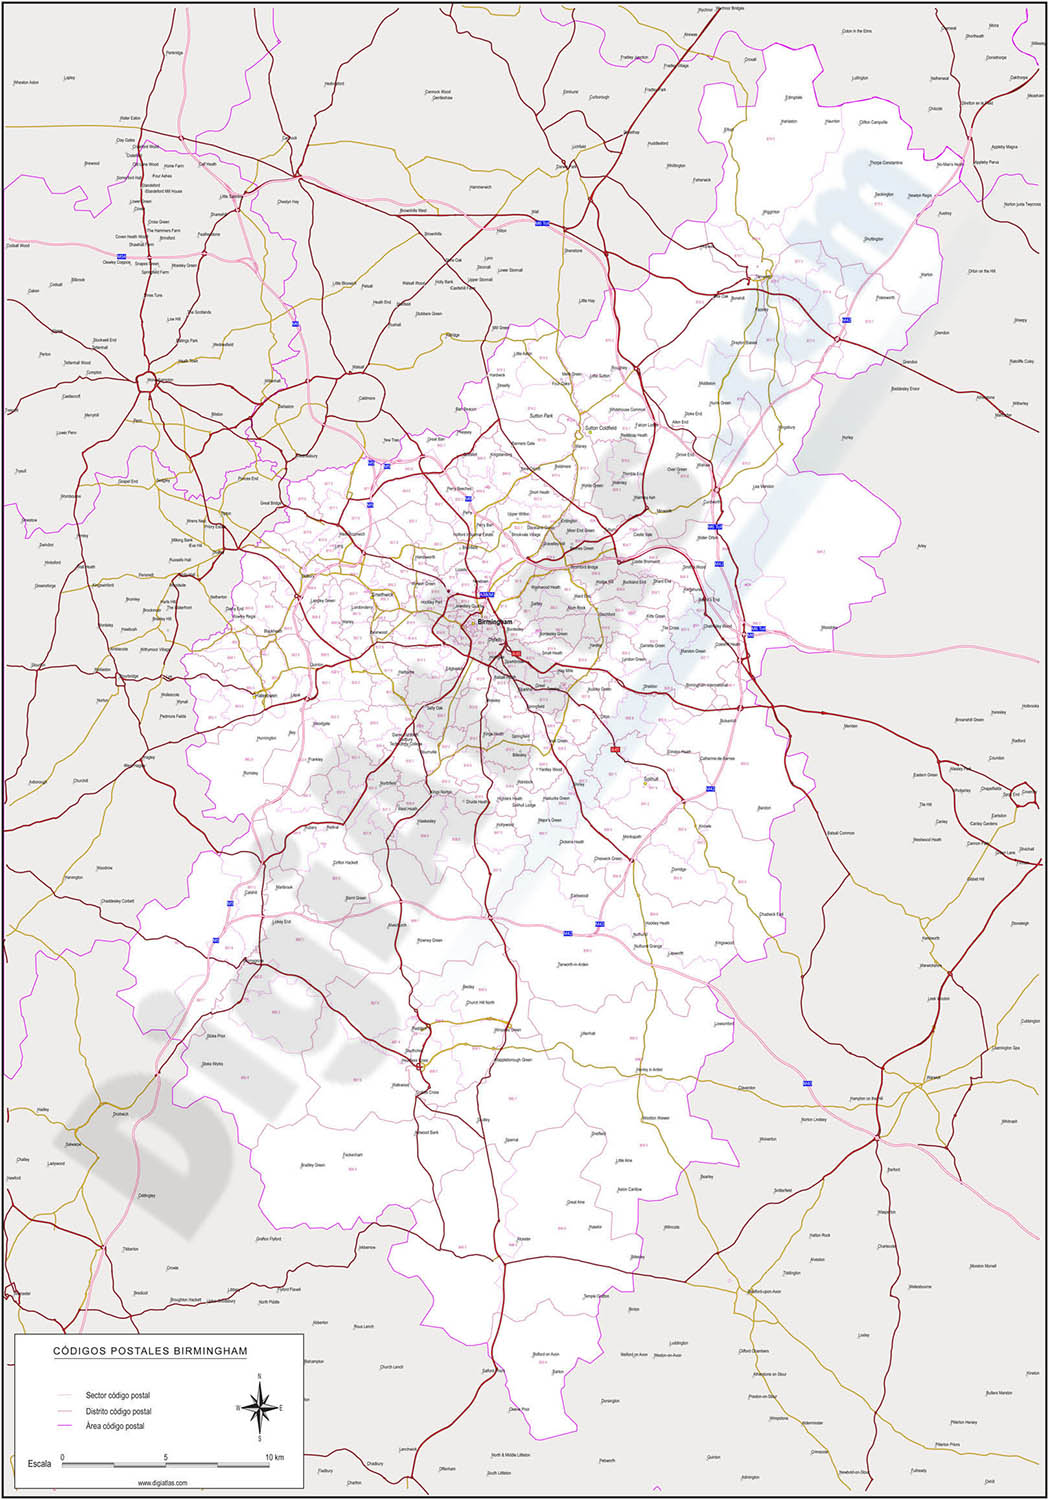 Birmingham - map of postcode area (B) with cities and major roads